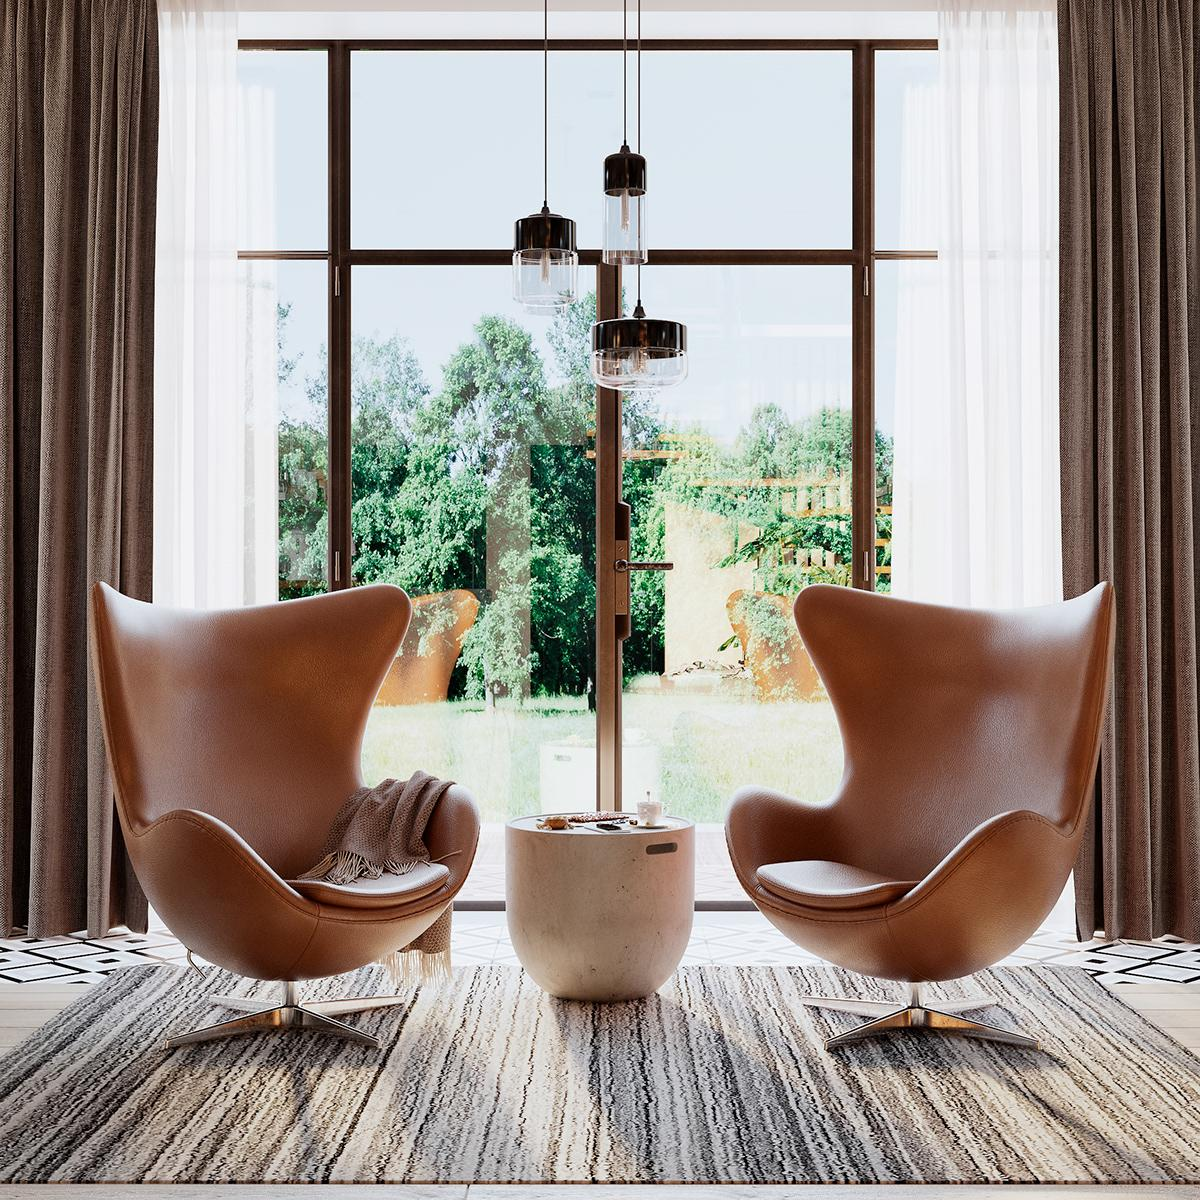 The perfect combination of a warm furniture palette and vibrant accessories in a sophisticated interior design